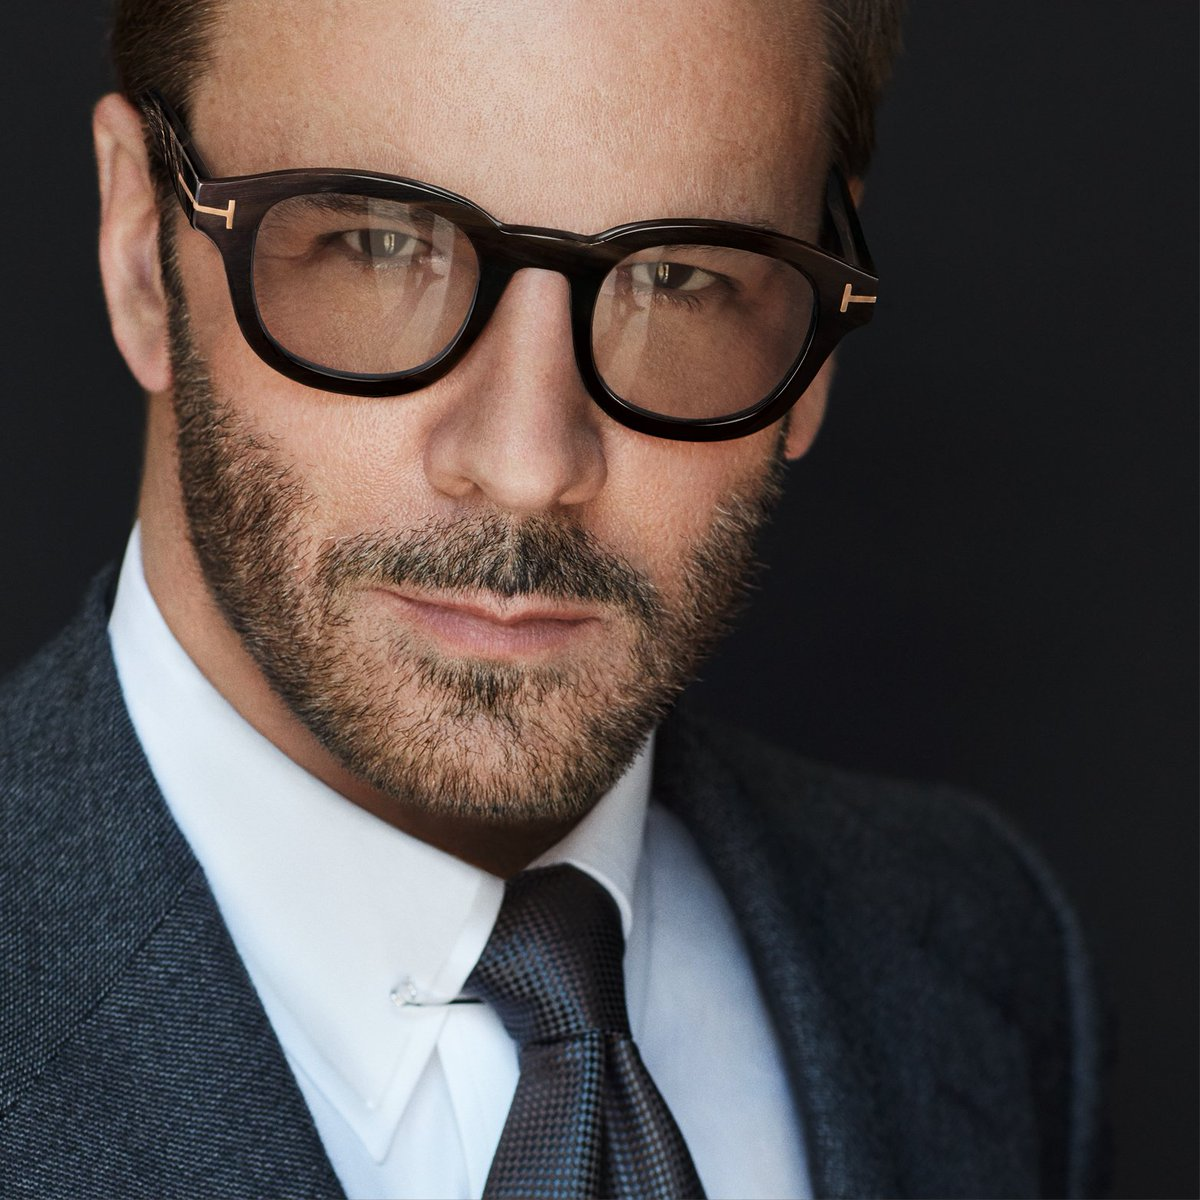 tomford_TOM FORD (@TOMFORD) | Twitter